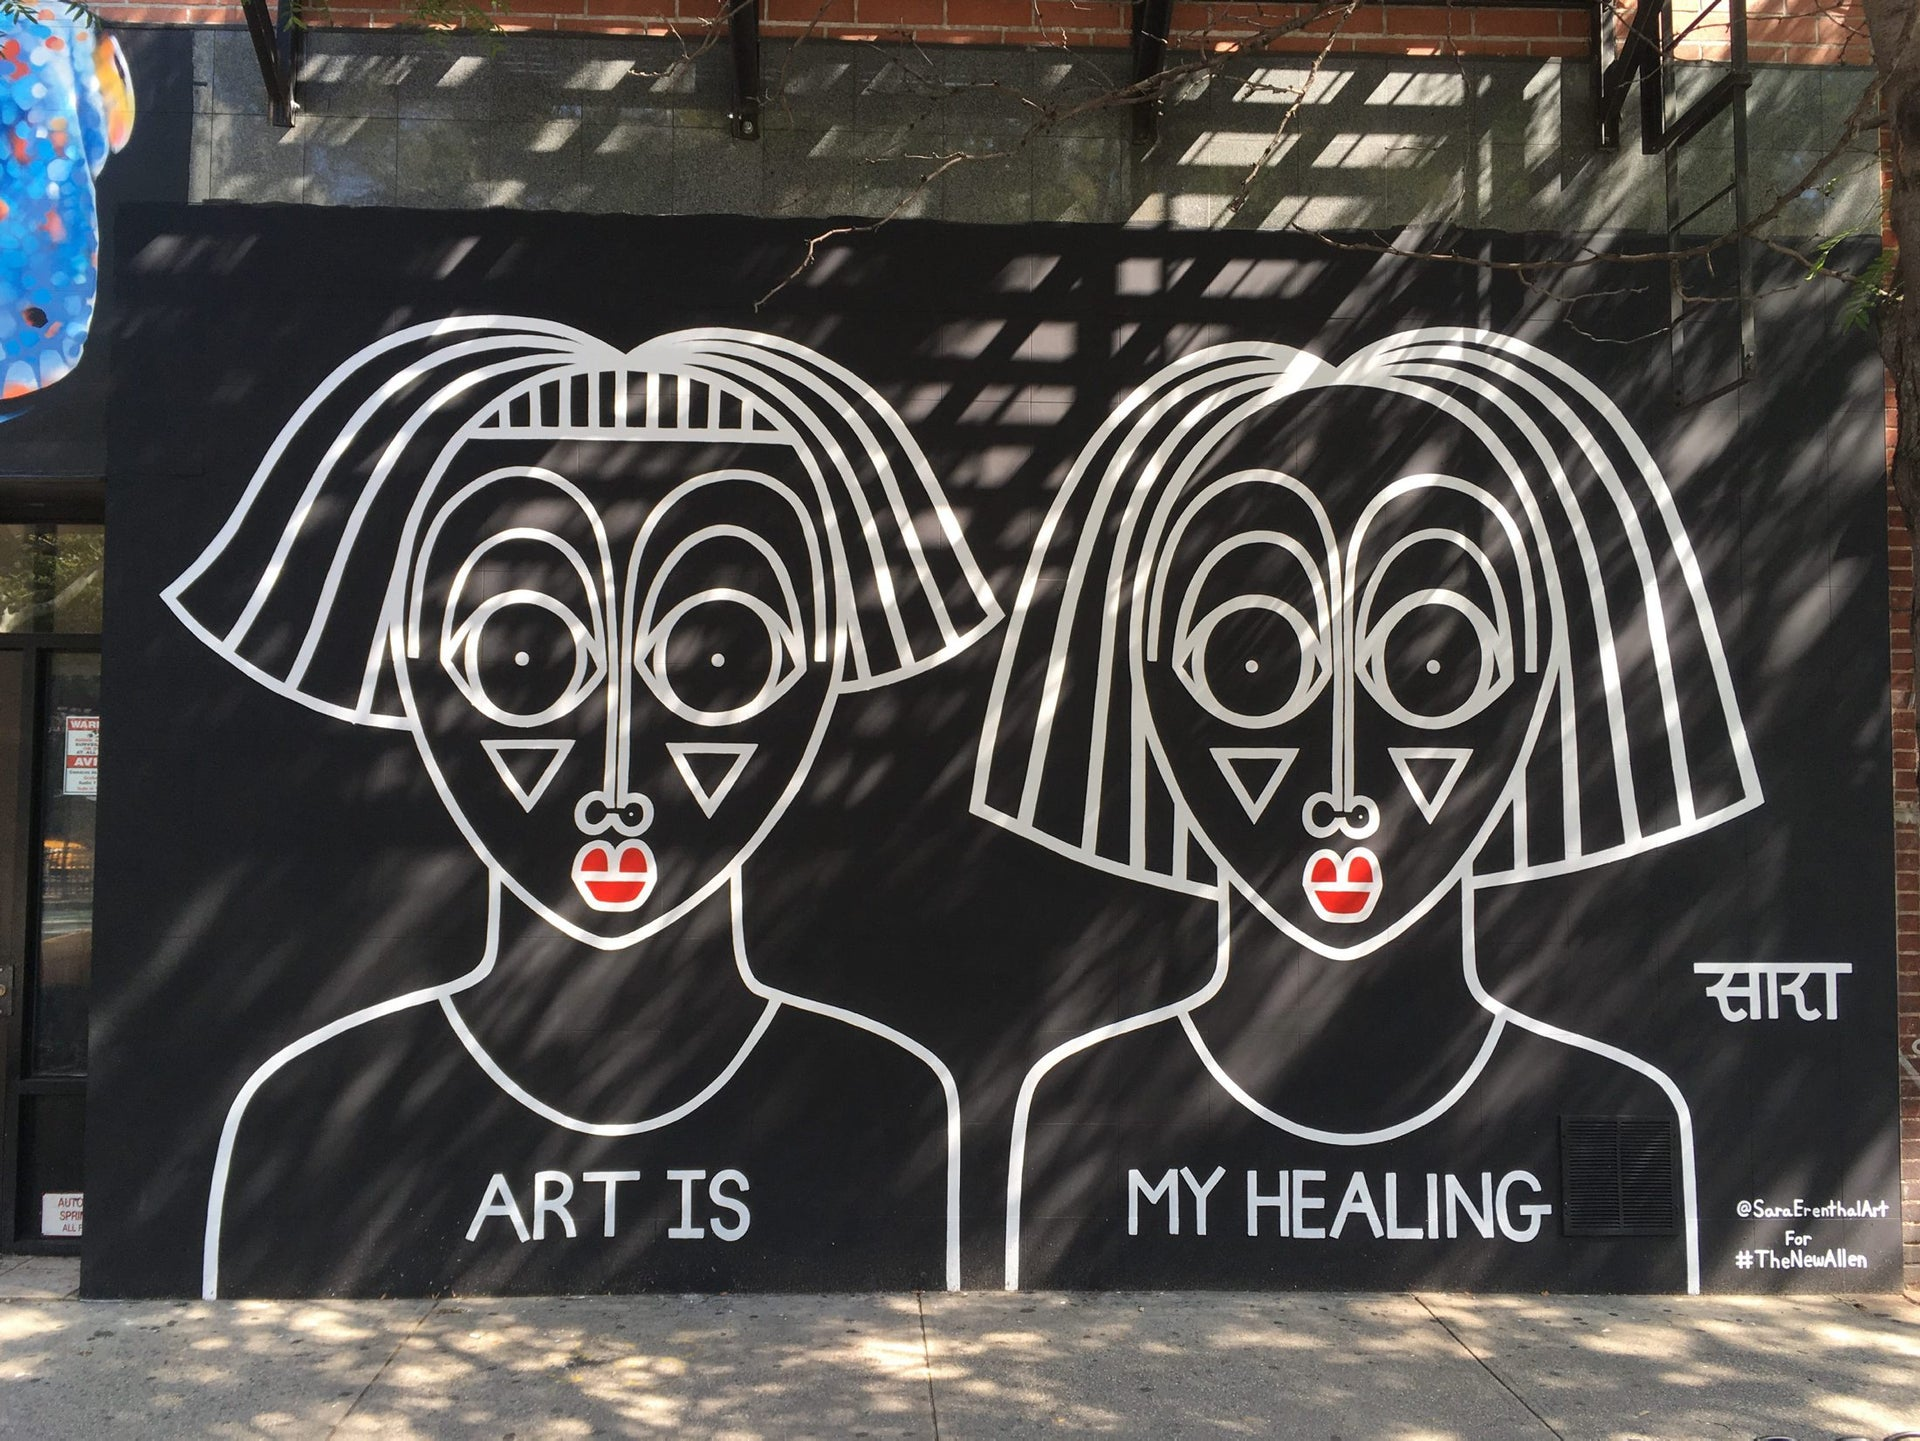 Mural for 'The New Allen' public art project in the Lower East Side in Manhattan.